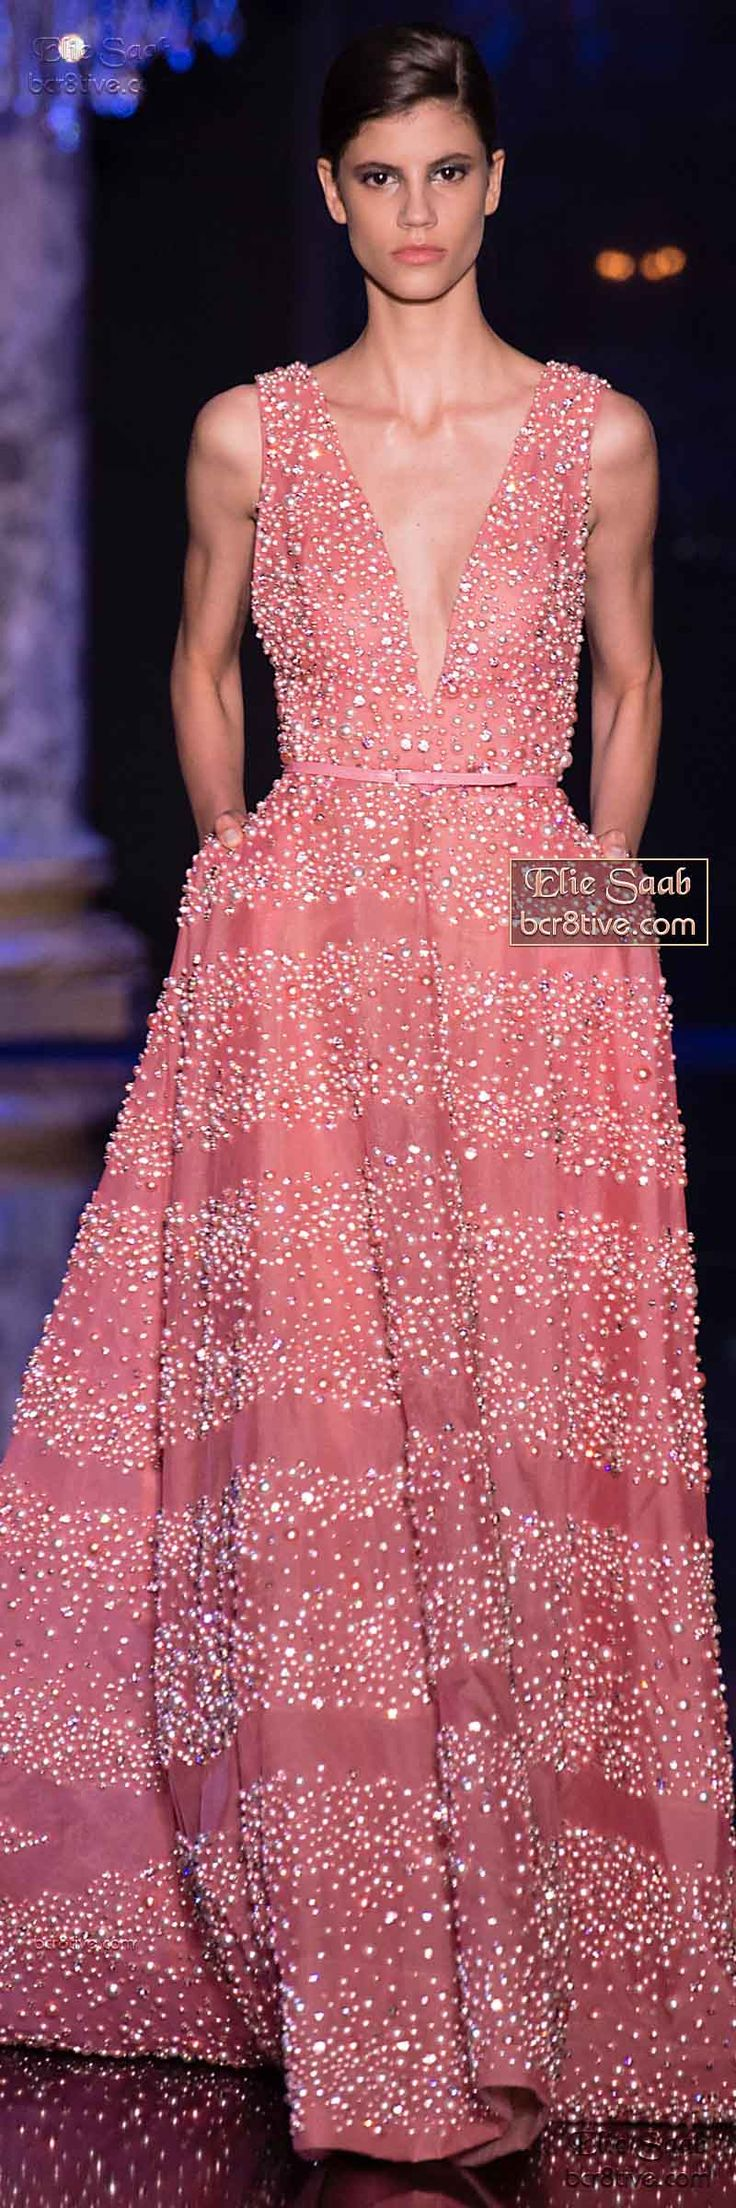 1643 best Party Dress images on Pinterest | Evening gowns, Formal ...